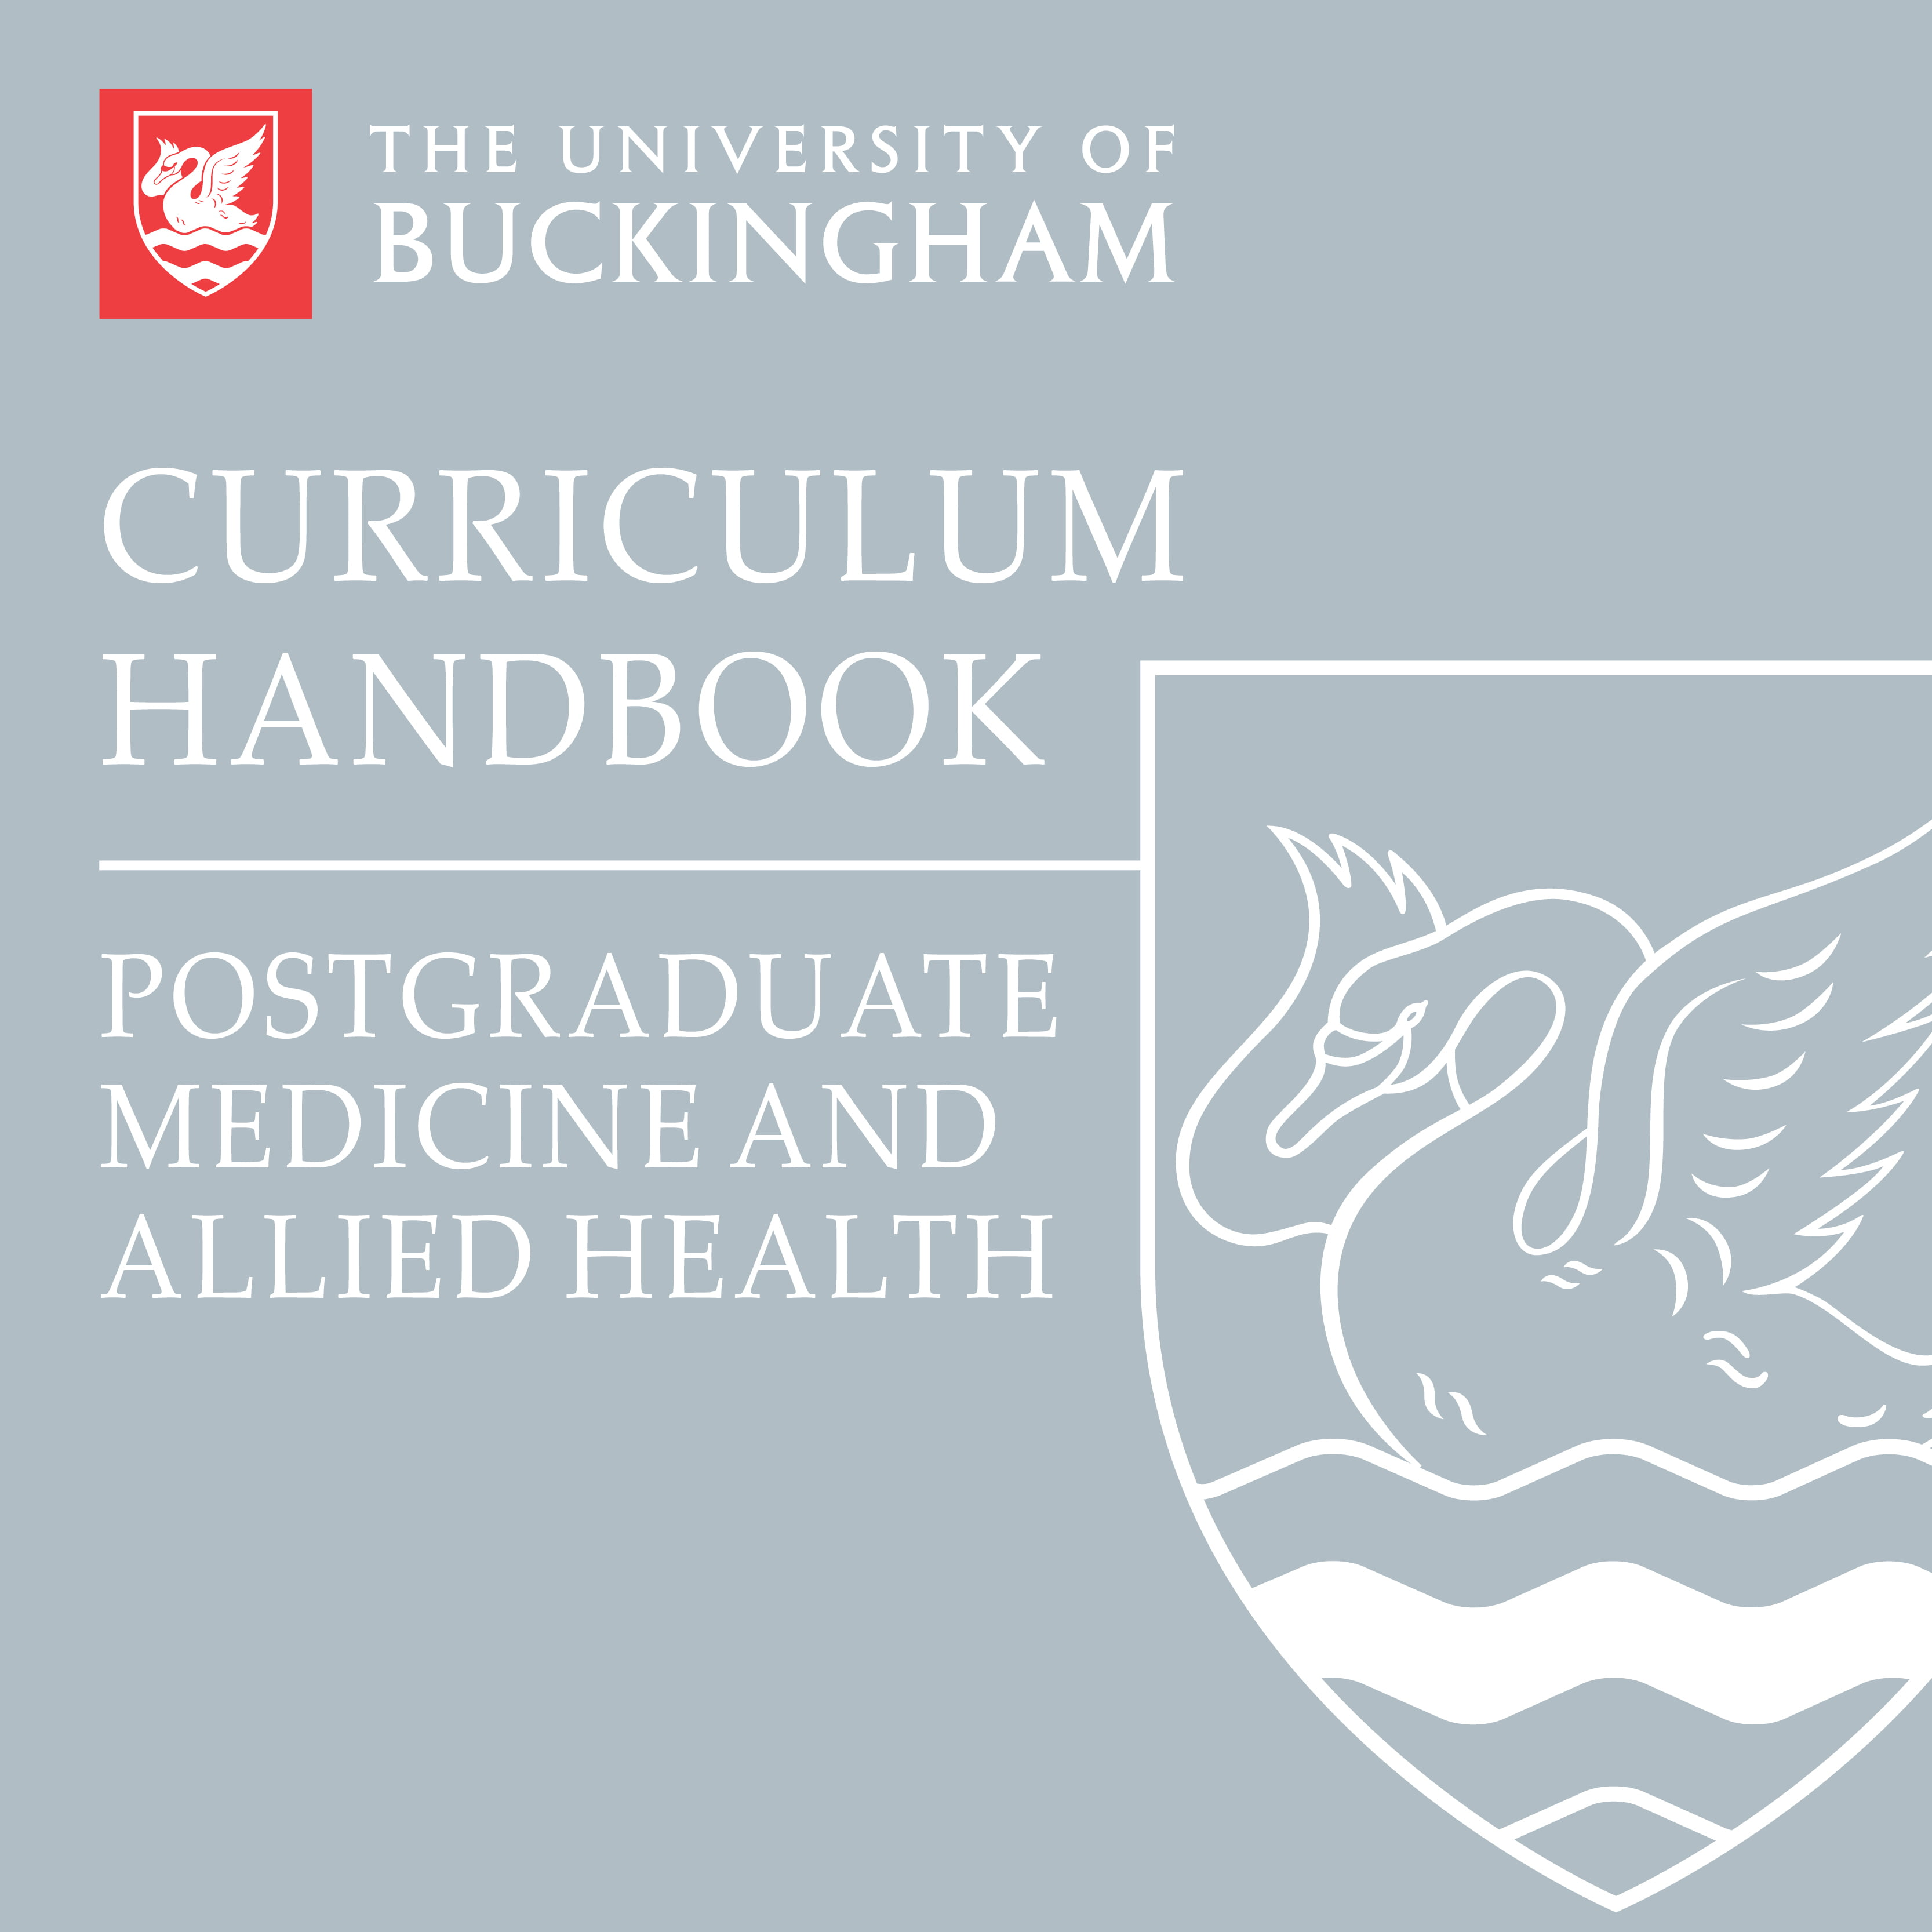 Curriculum Handbook - PG Medicine and Allied Health - front cover - online